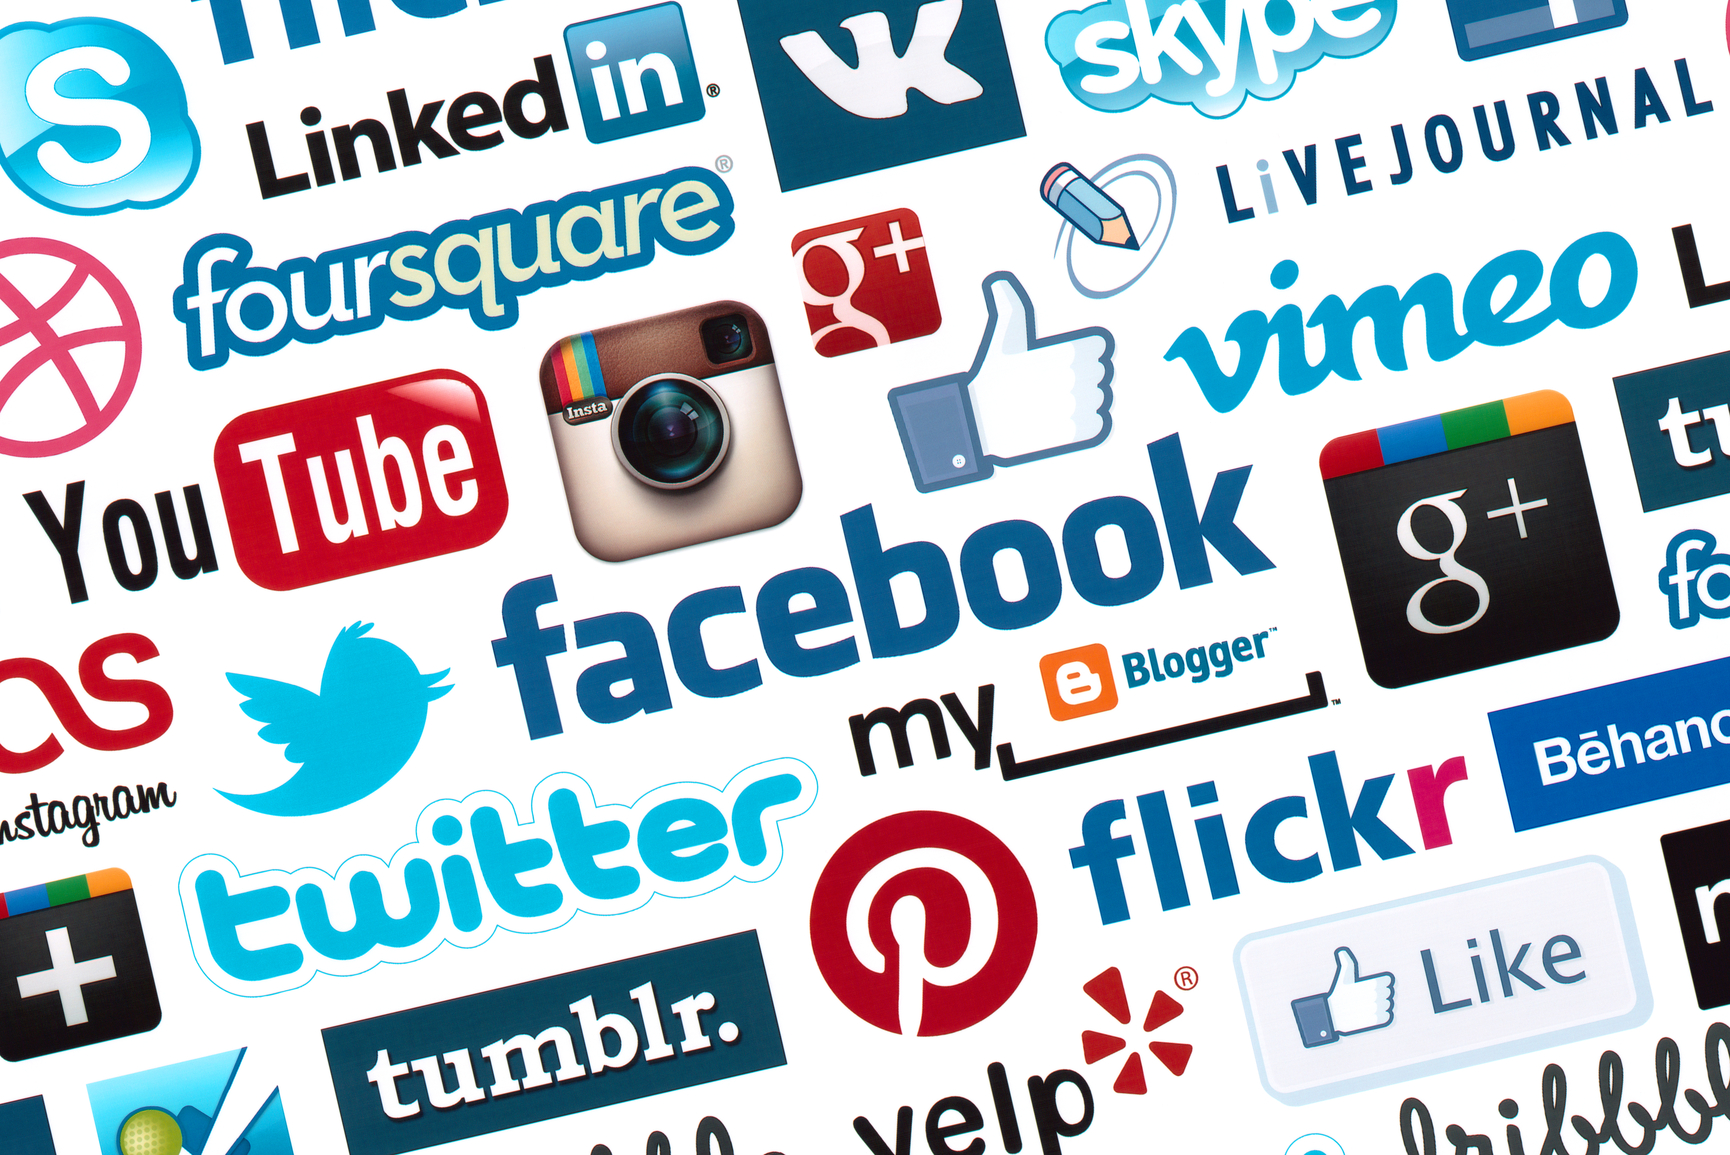 Use Social Media Data to understand your audience